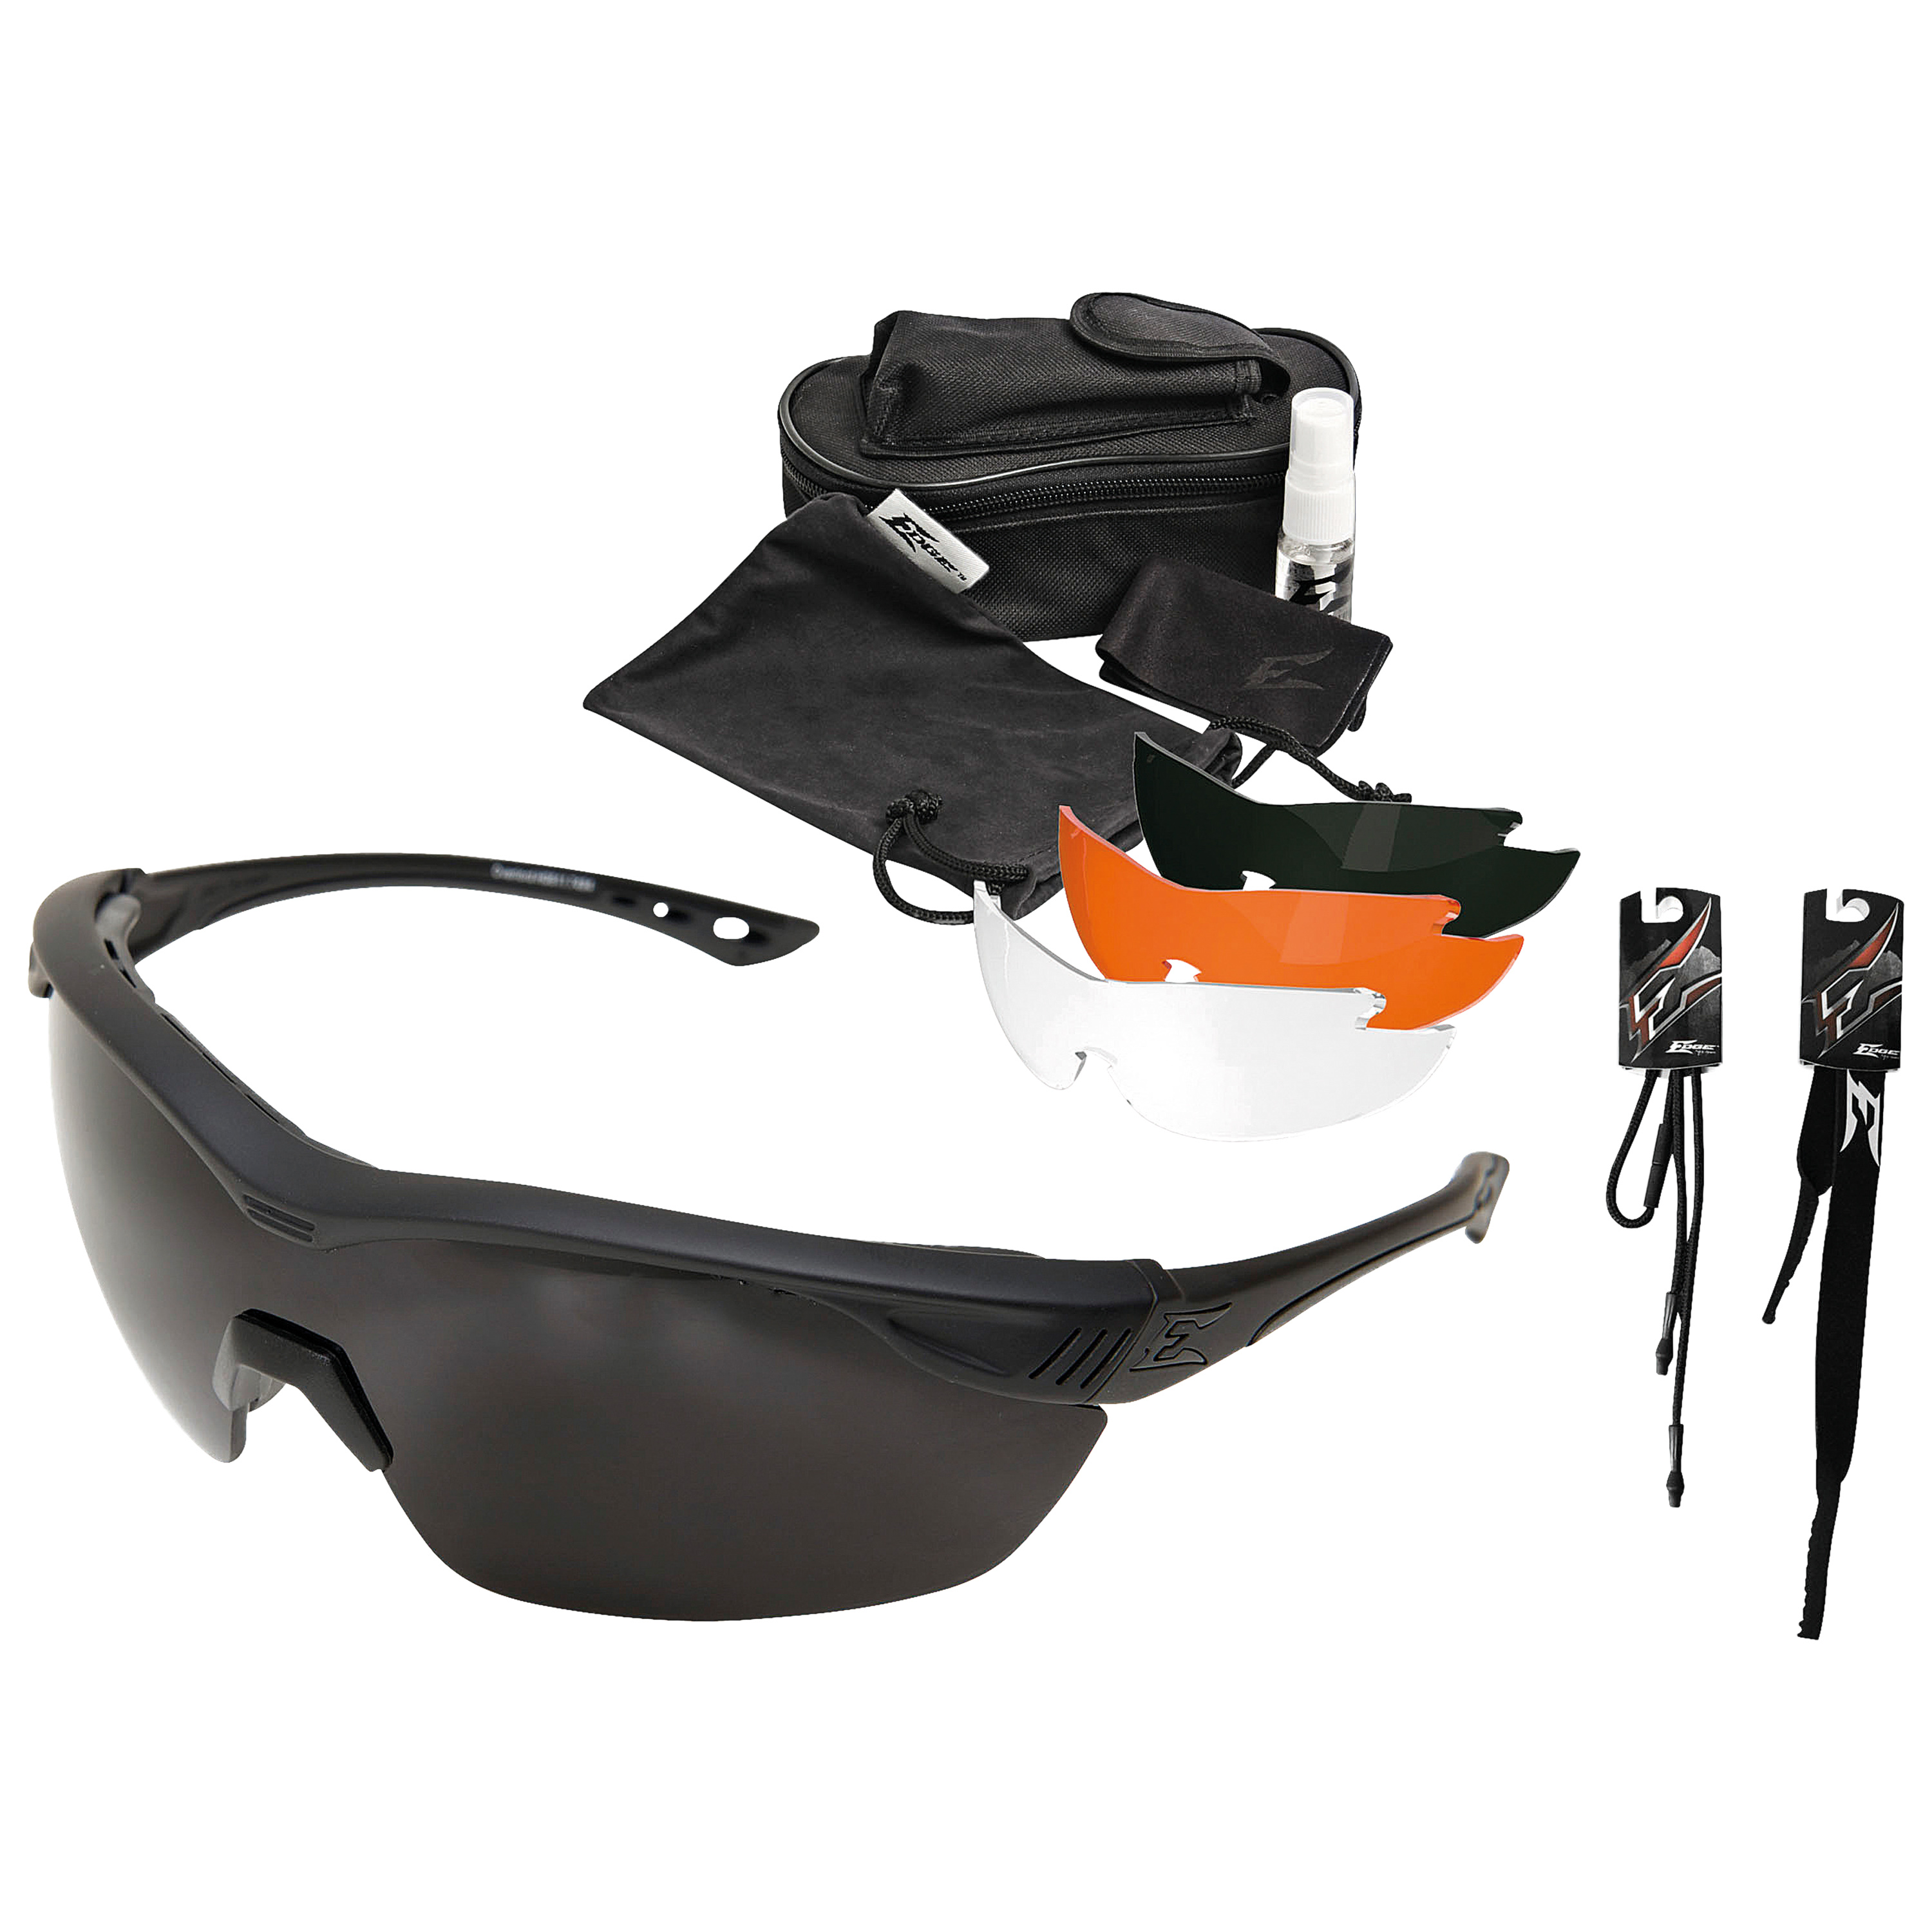 Edge Tactical Overlord Kit